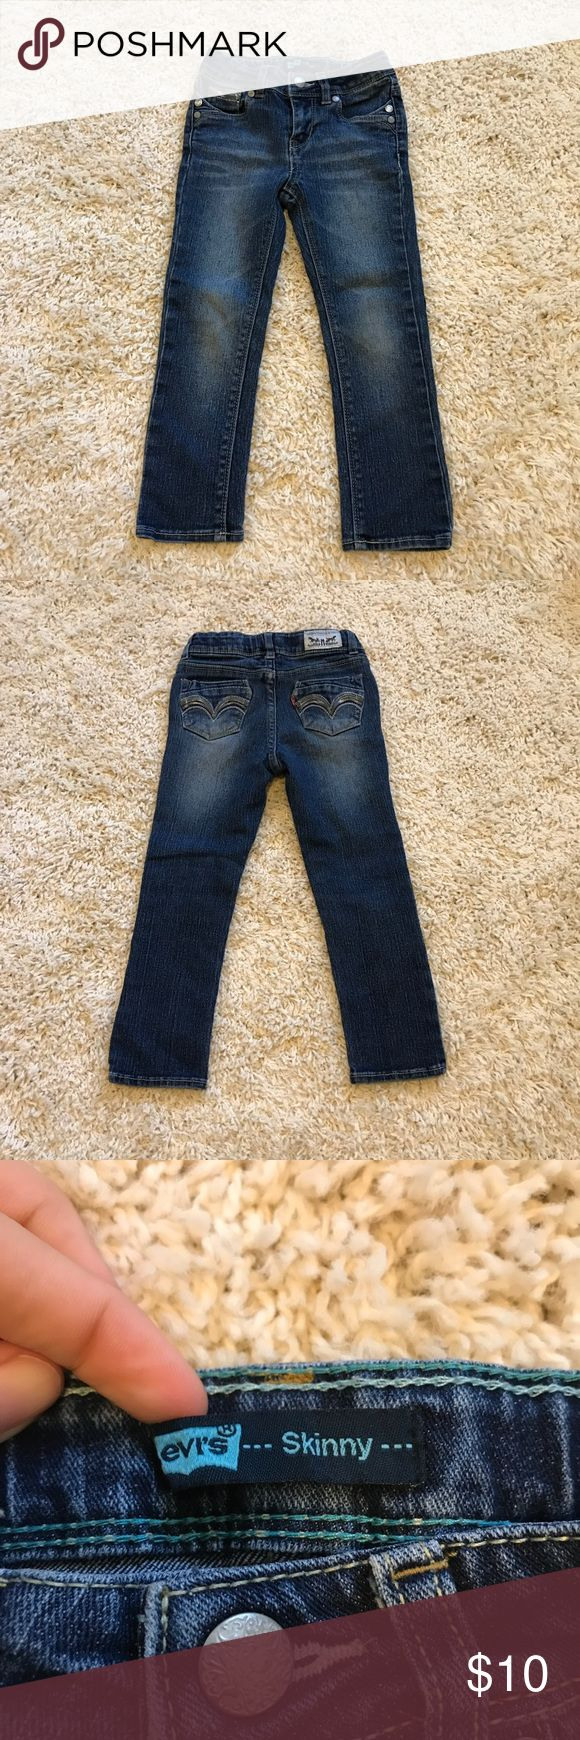 Levi's skinny Jeans Great condition! No holes or stains  Gray detail design on pockets  Adjustable waist 55% ramie 24% cotton 20% polyester  1% spandex Machine wash Levi's Bottoms Jeans